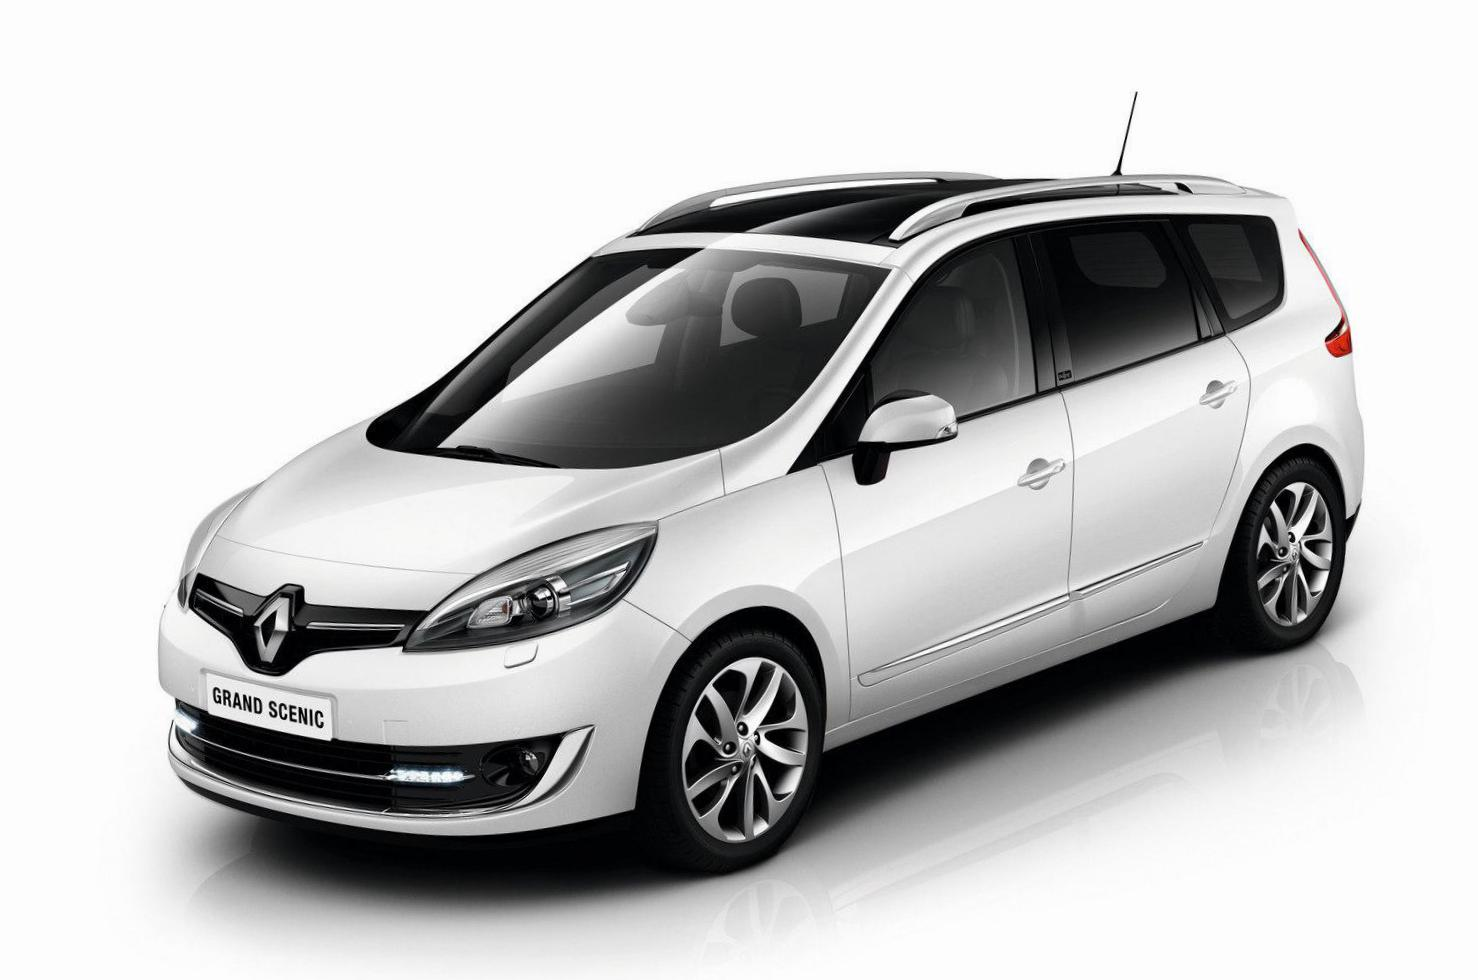 Grand Scenic Renault approved 2010